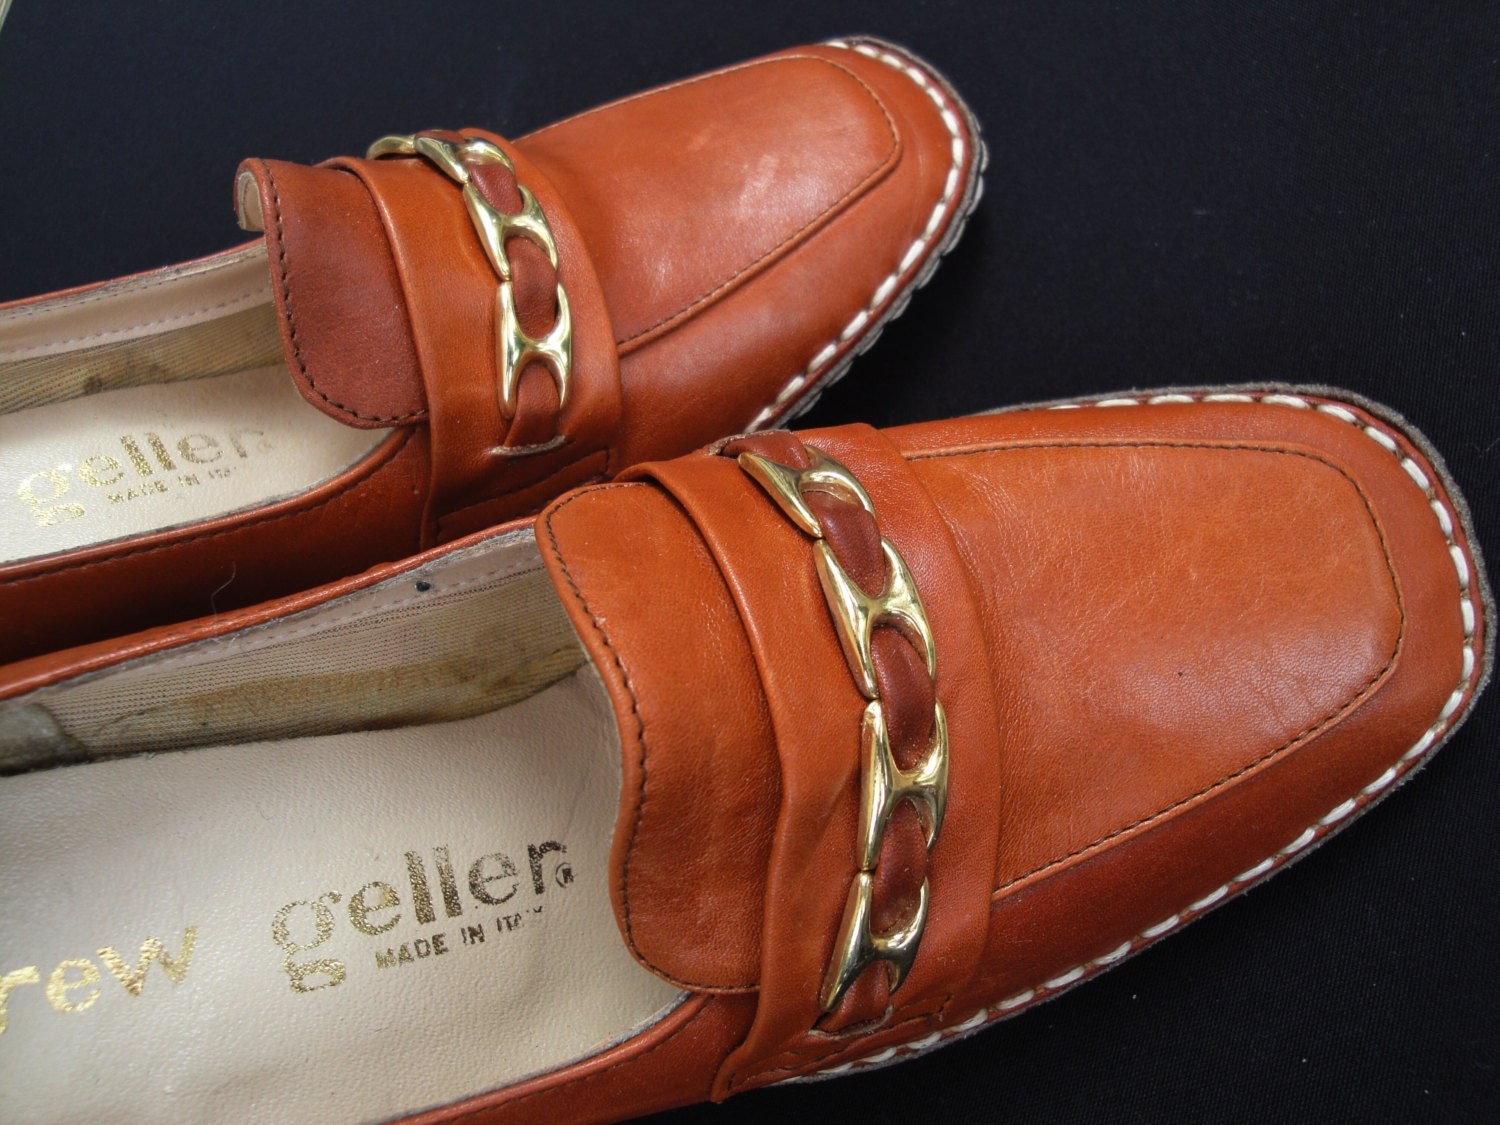 Vintage Genuine Caramel Leather Andrew Geller Italian Caramel Genuine Leather Shoes Heels Hand Stitched Made in Italy Size 4 1/2 USA 35 Europe OS d43adc